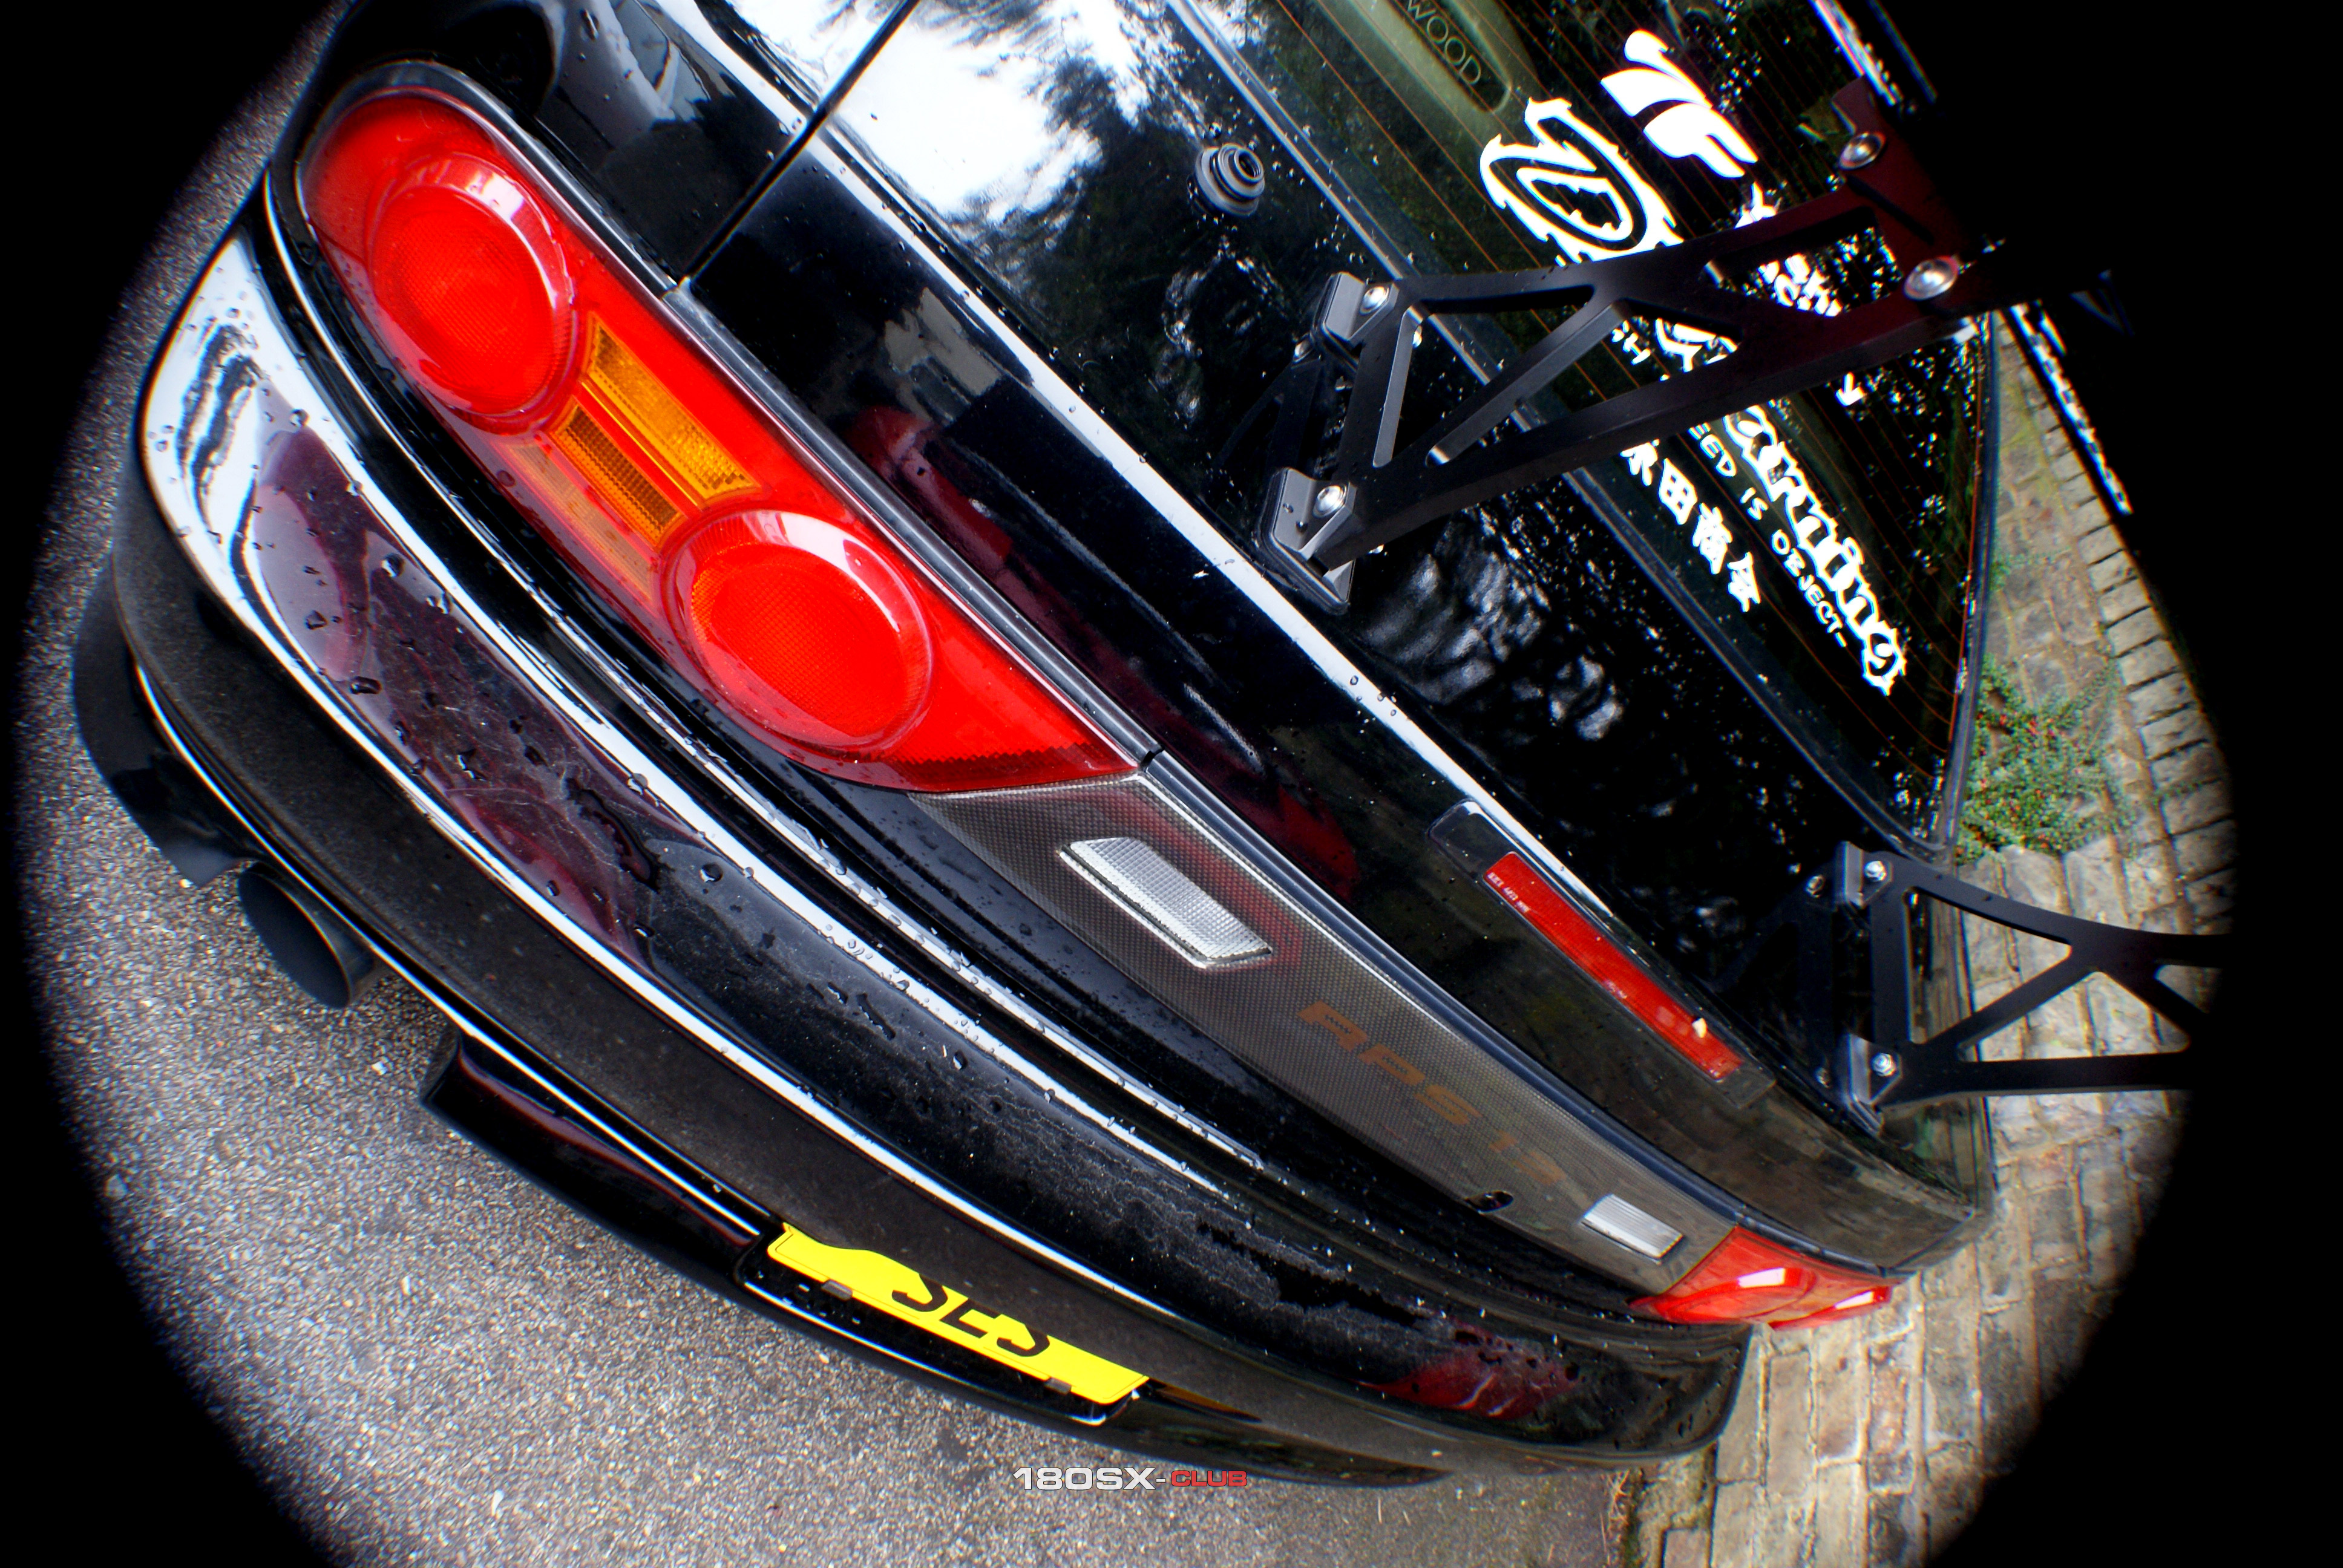 Nissan 180sx Khuro Black with GT Wing Fisheye Wallpaper